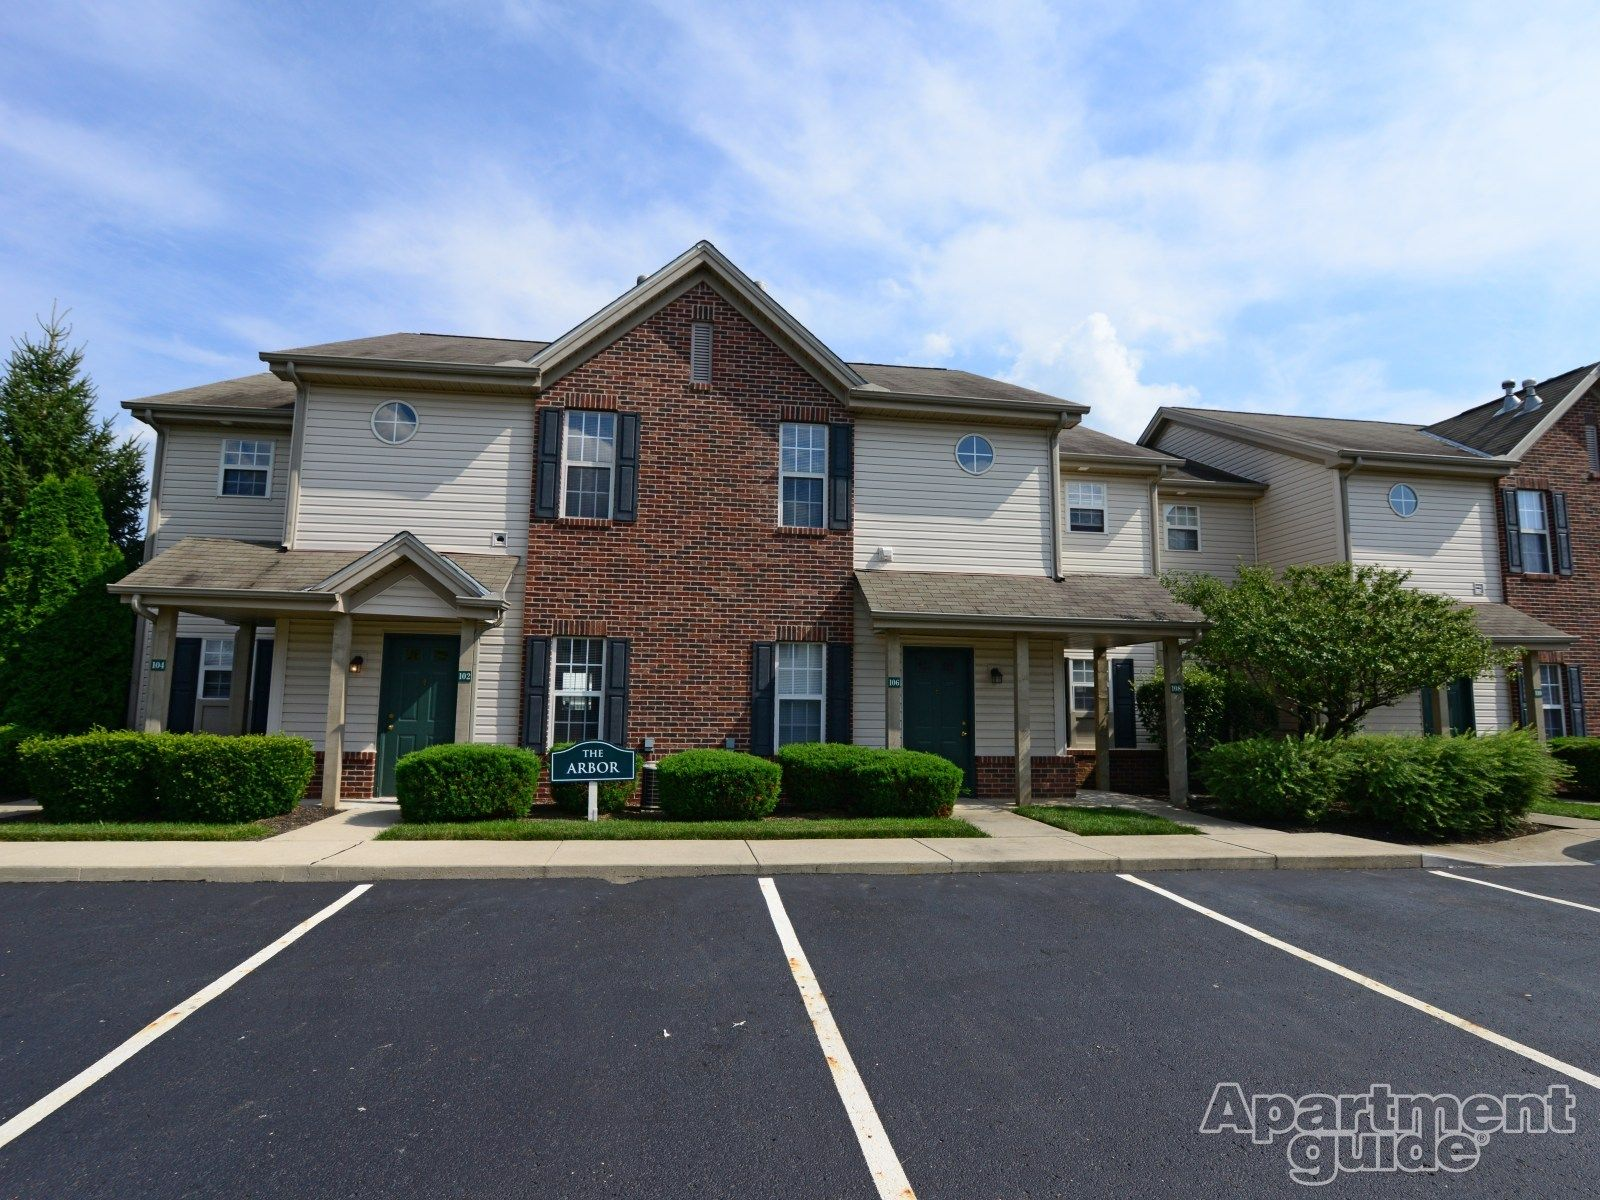 Pickerington Ridge Apartments - Pickerington, OH 43147 | Apartments ...